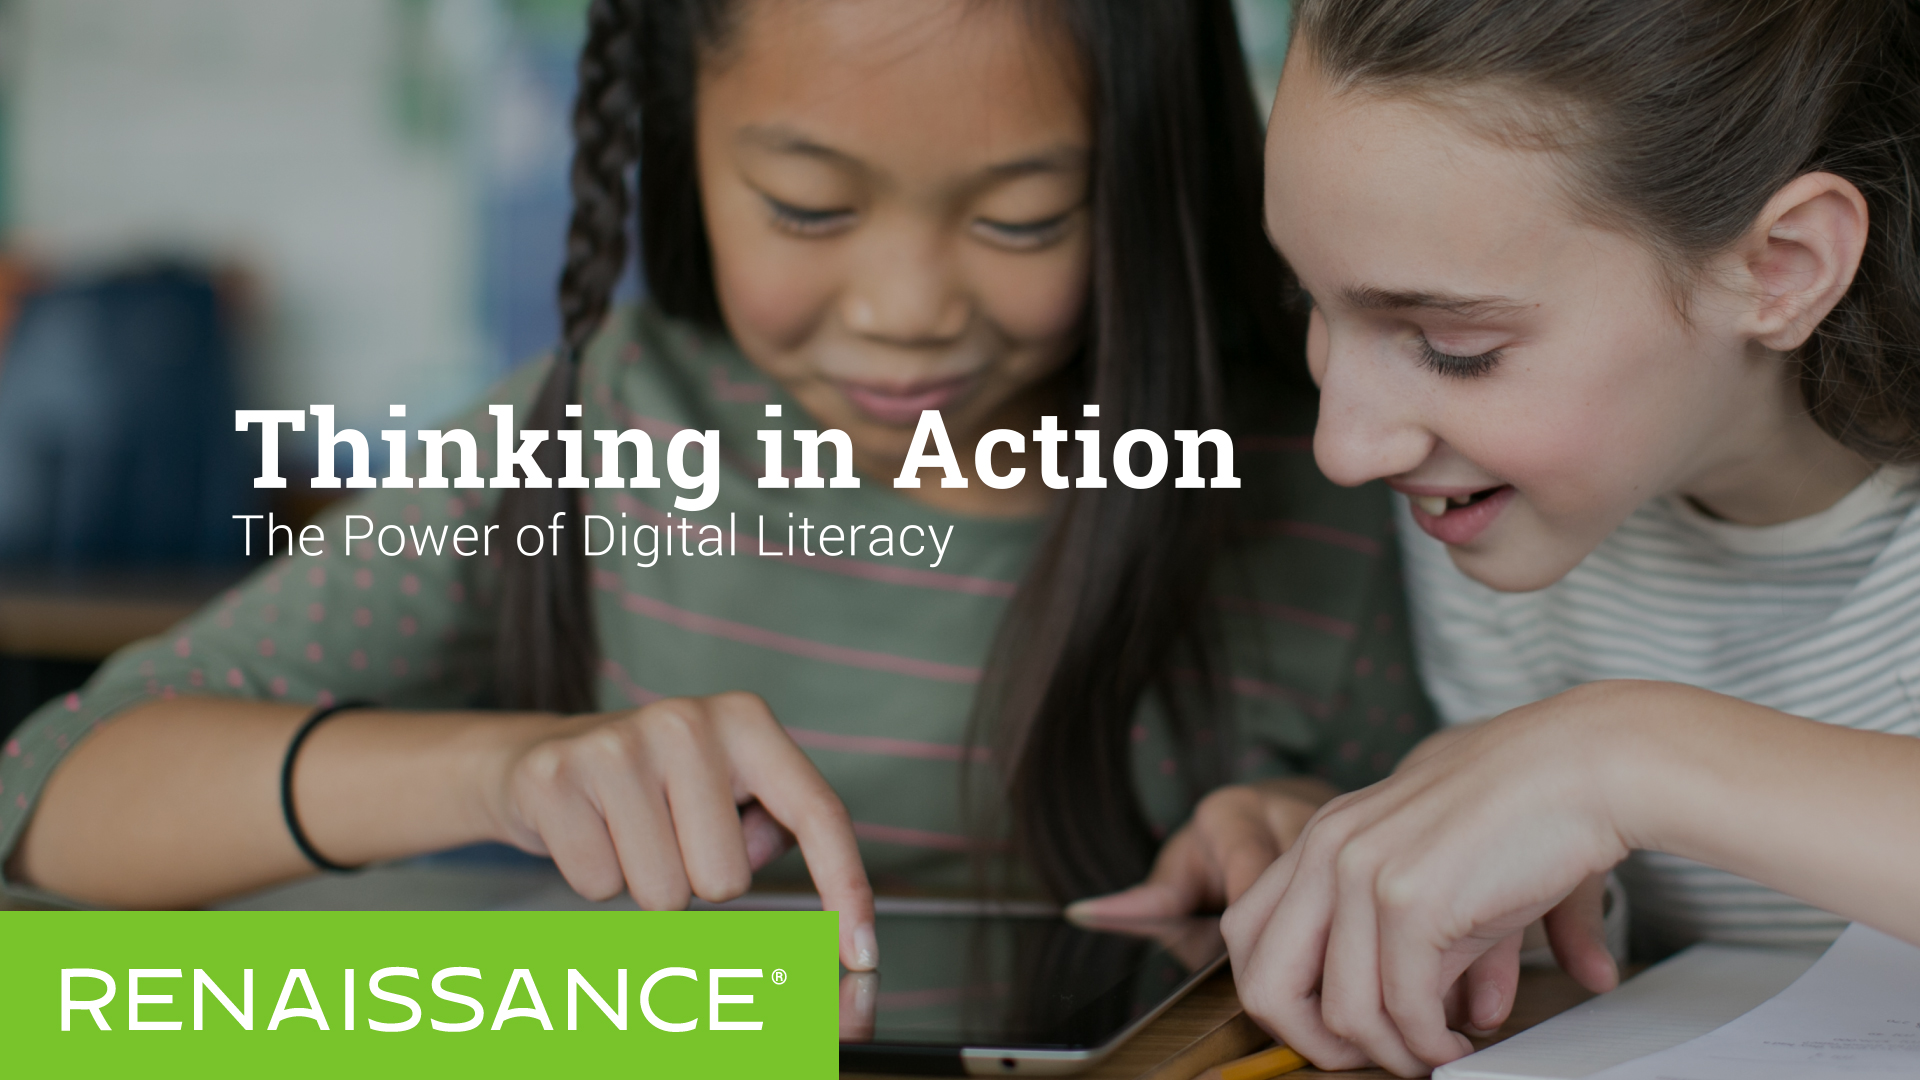 Thinking in Action: The Power of Digital Literacy